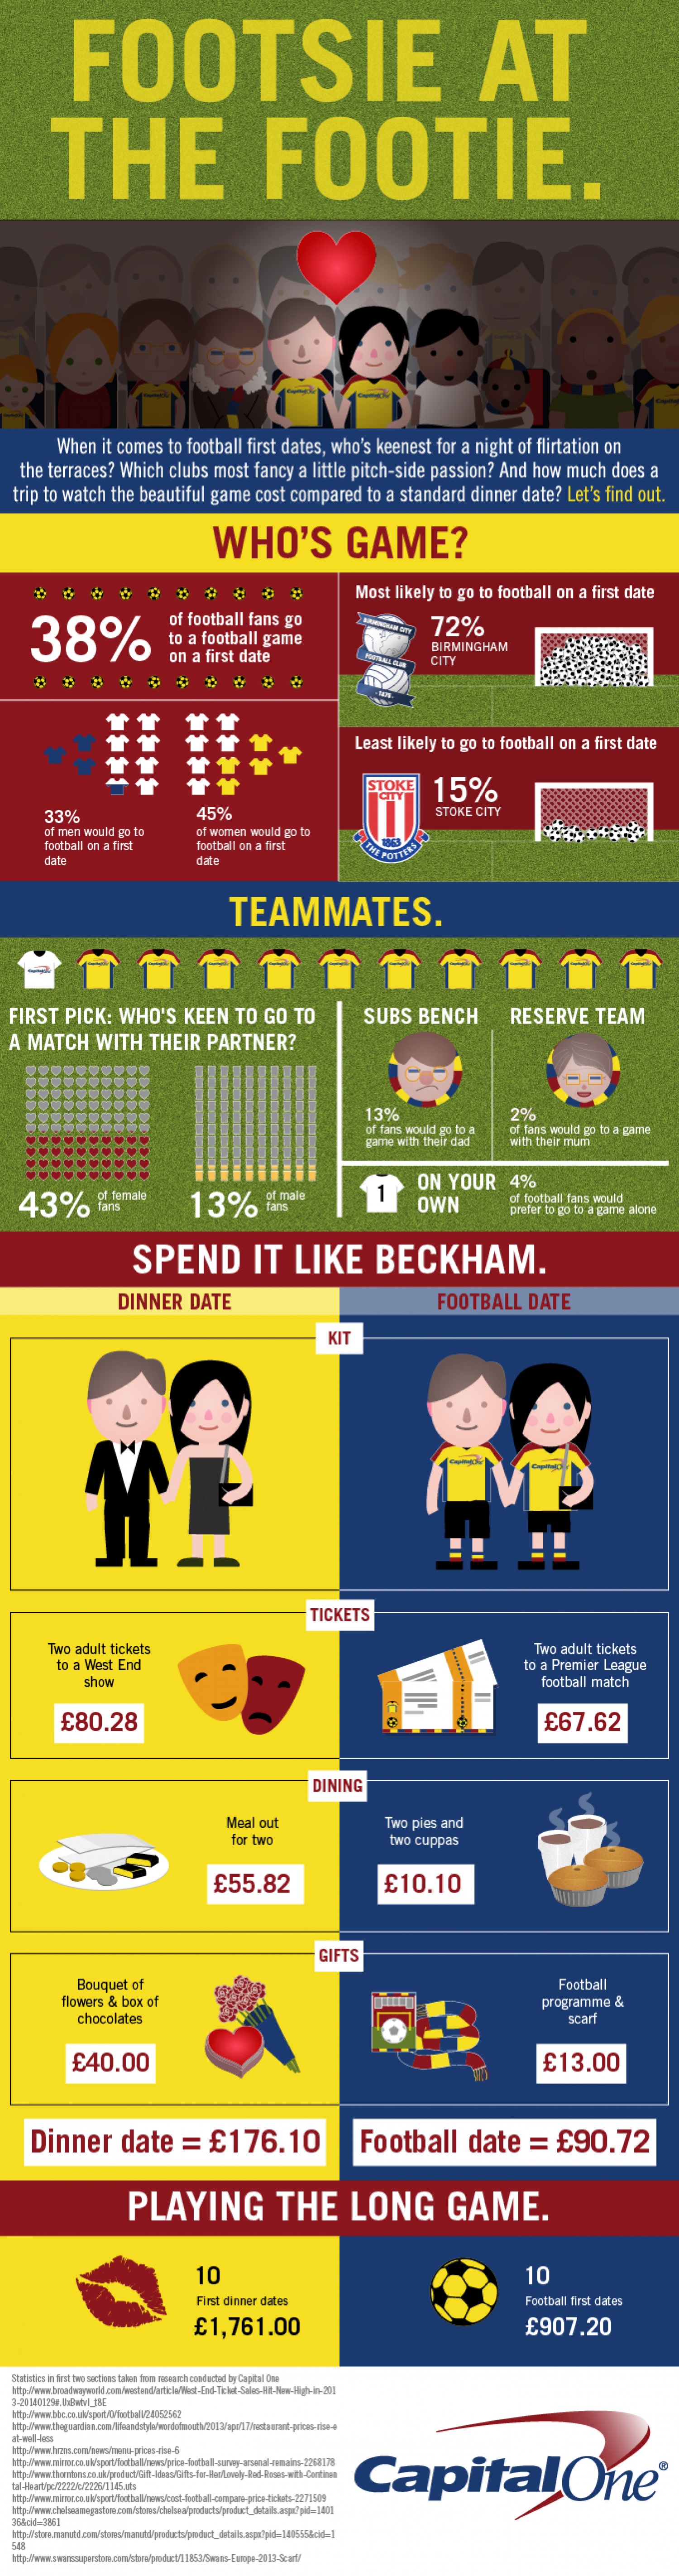 Footsie at the Footie. Infographic